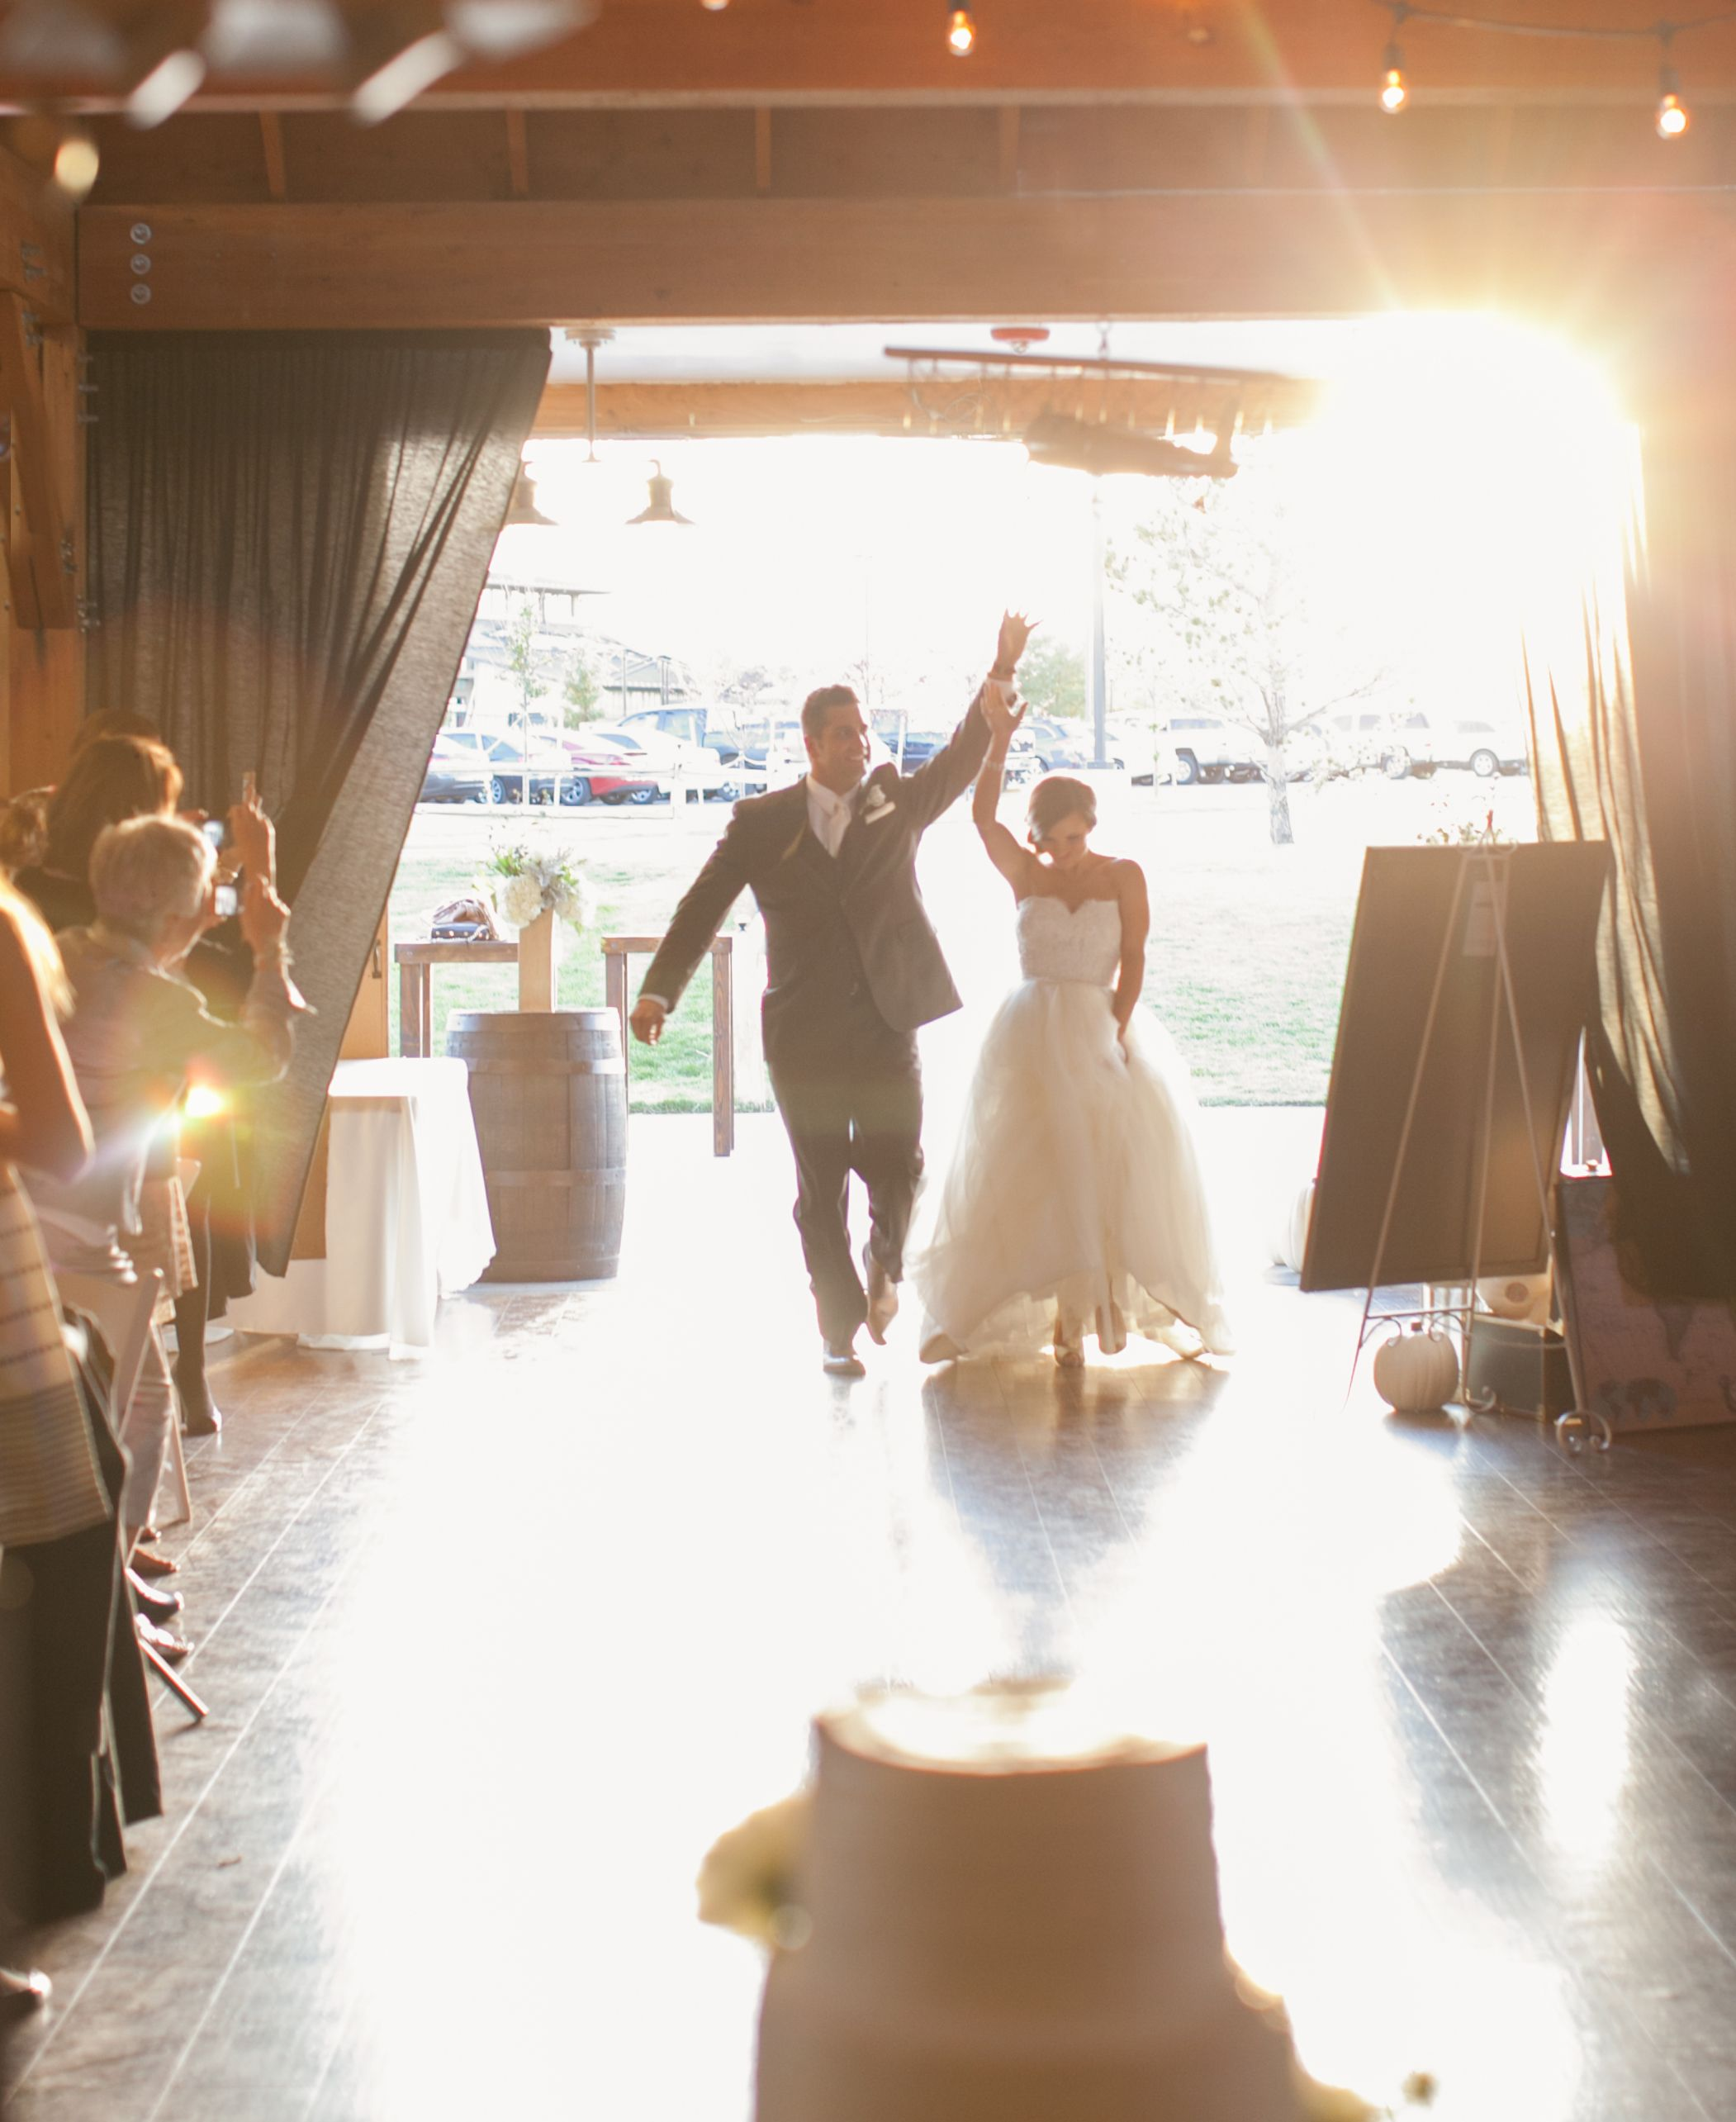 Wedding Songs Ceremony Entrance: Wedding Entrance Songs For The Newlyweds That'll Wow Any